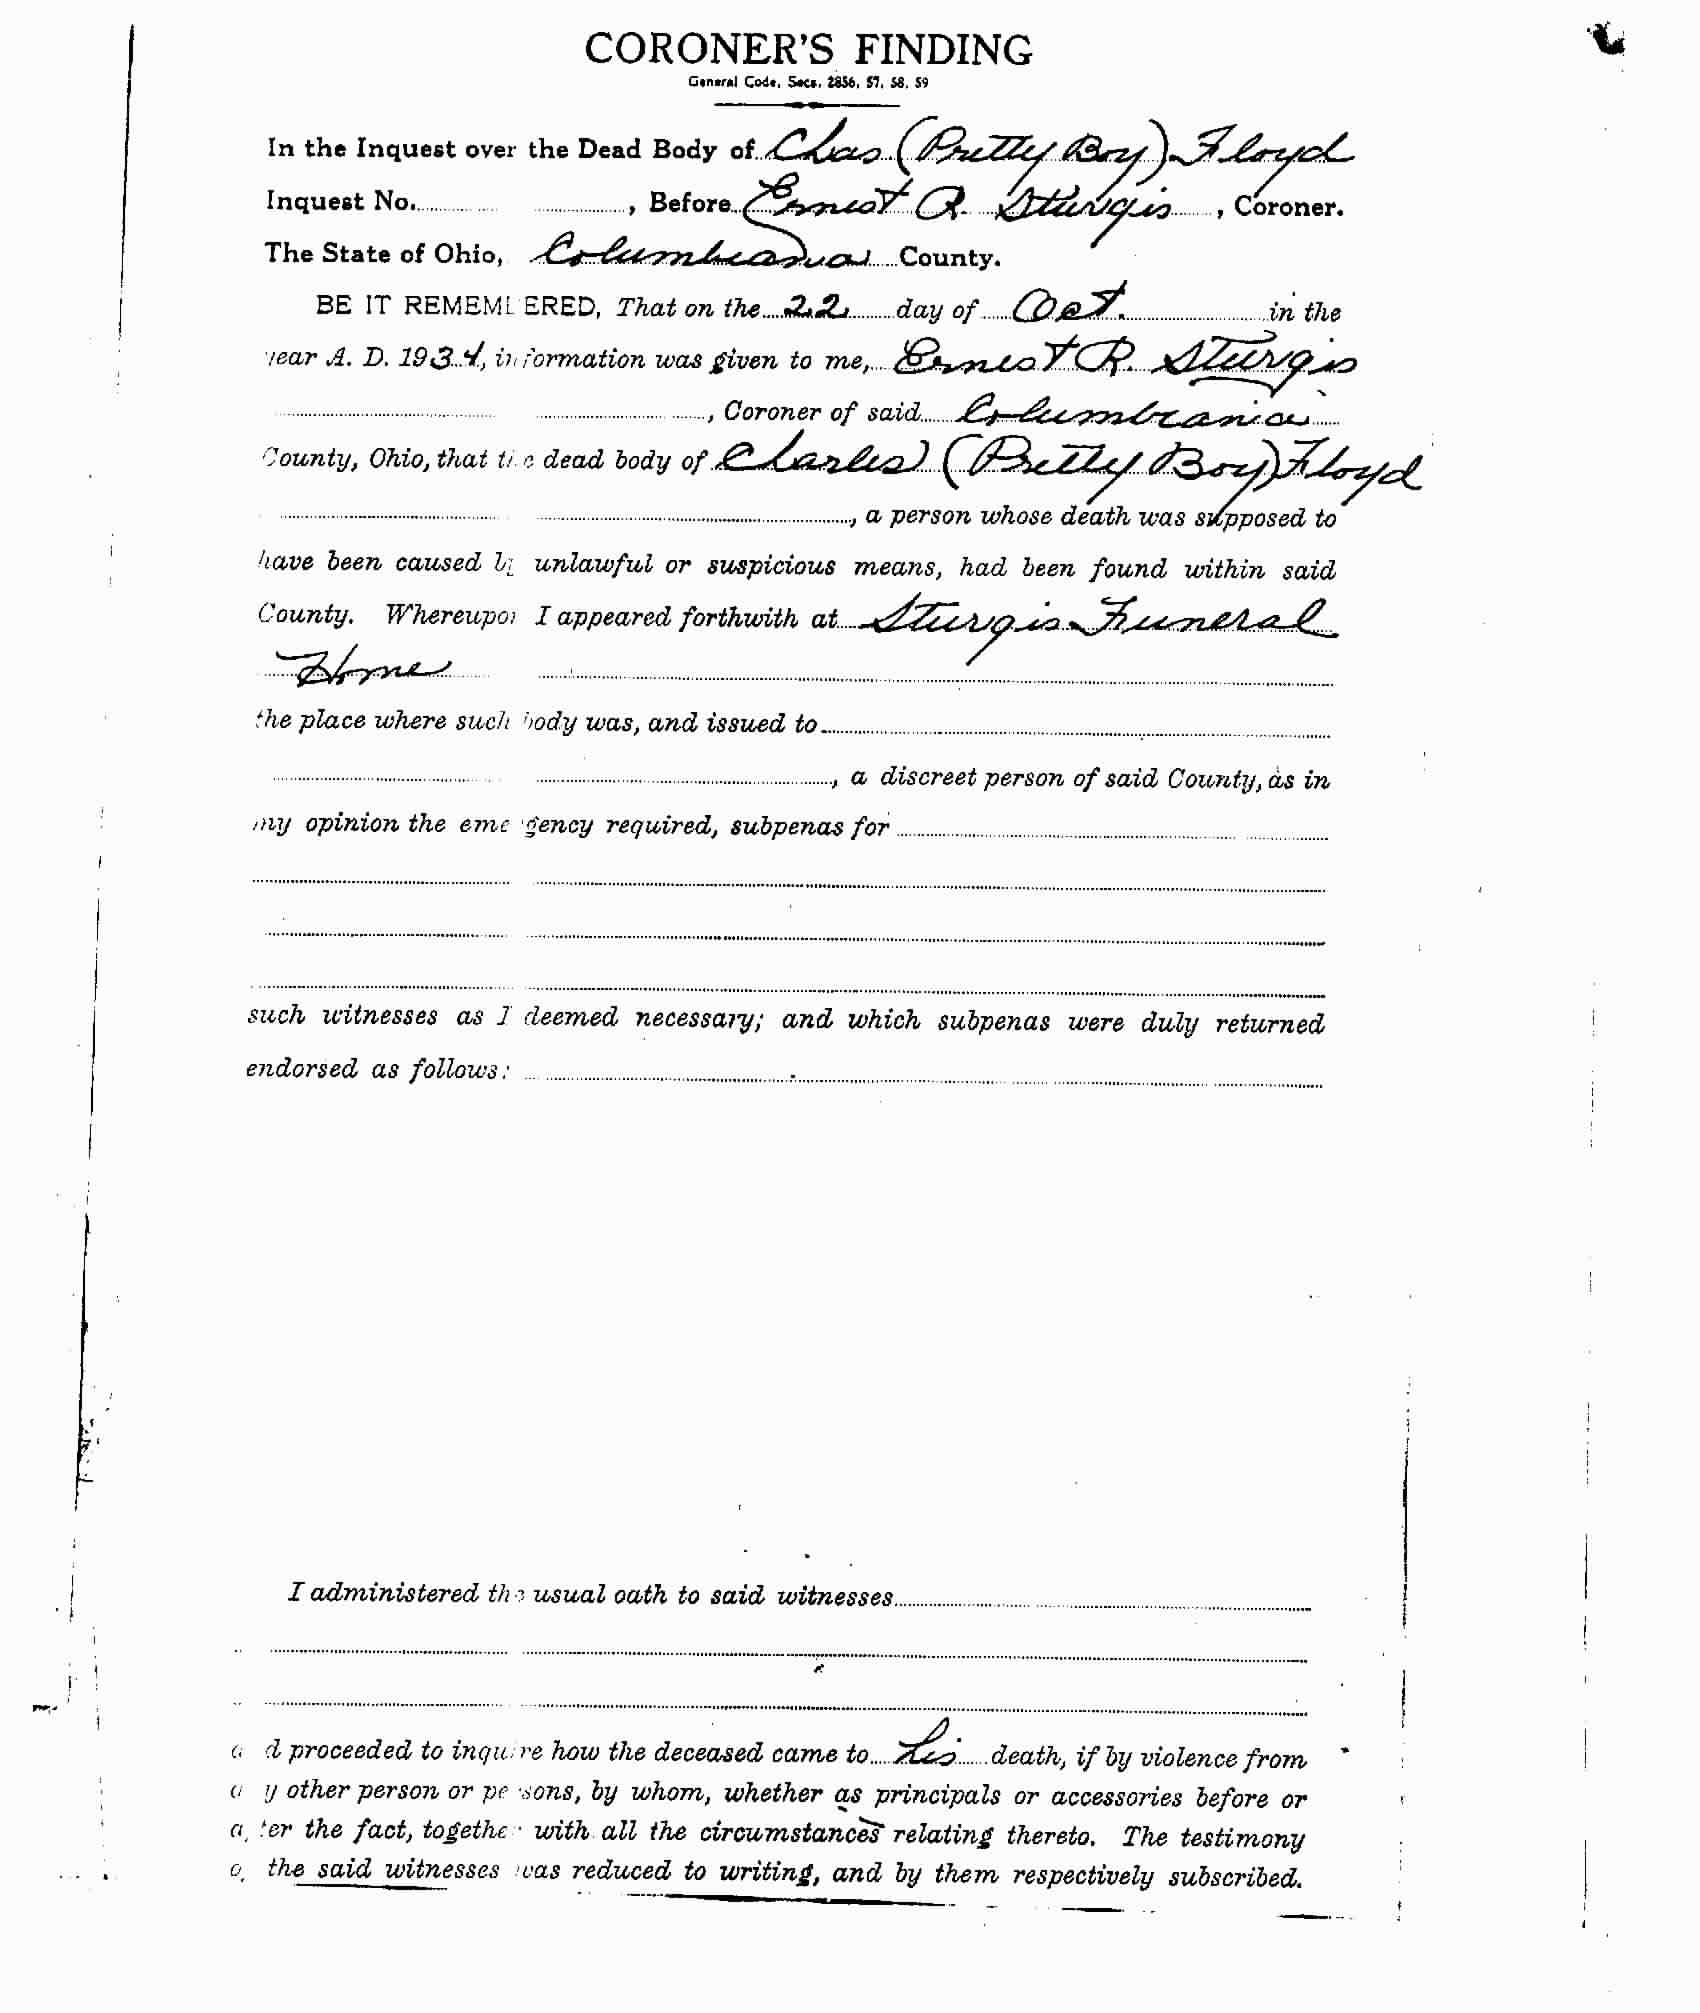 Page 2 of the Coroner's report